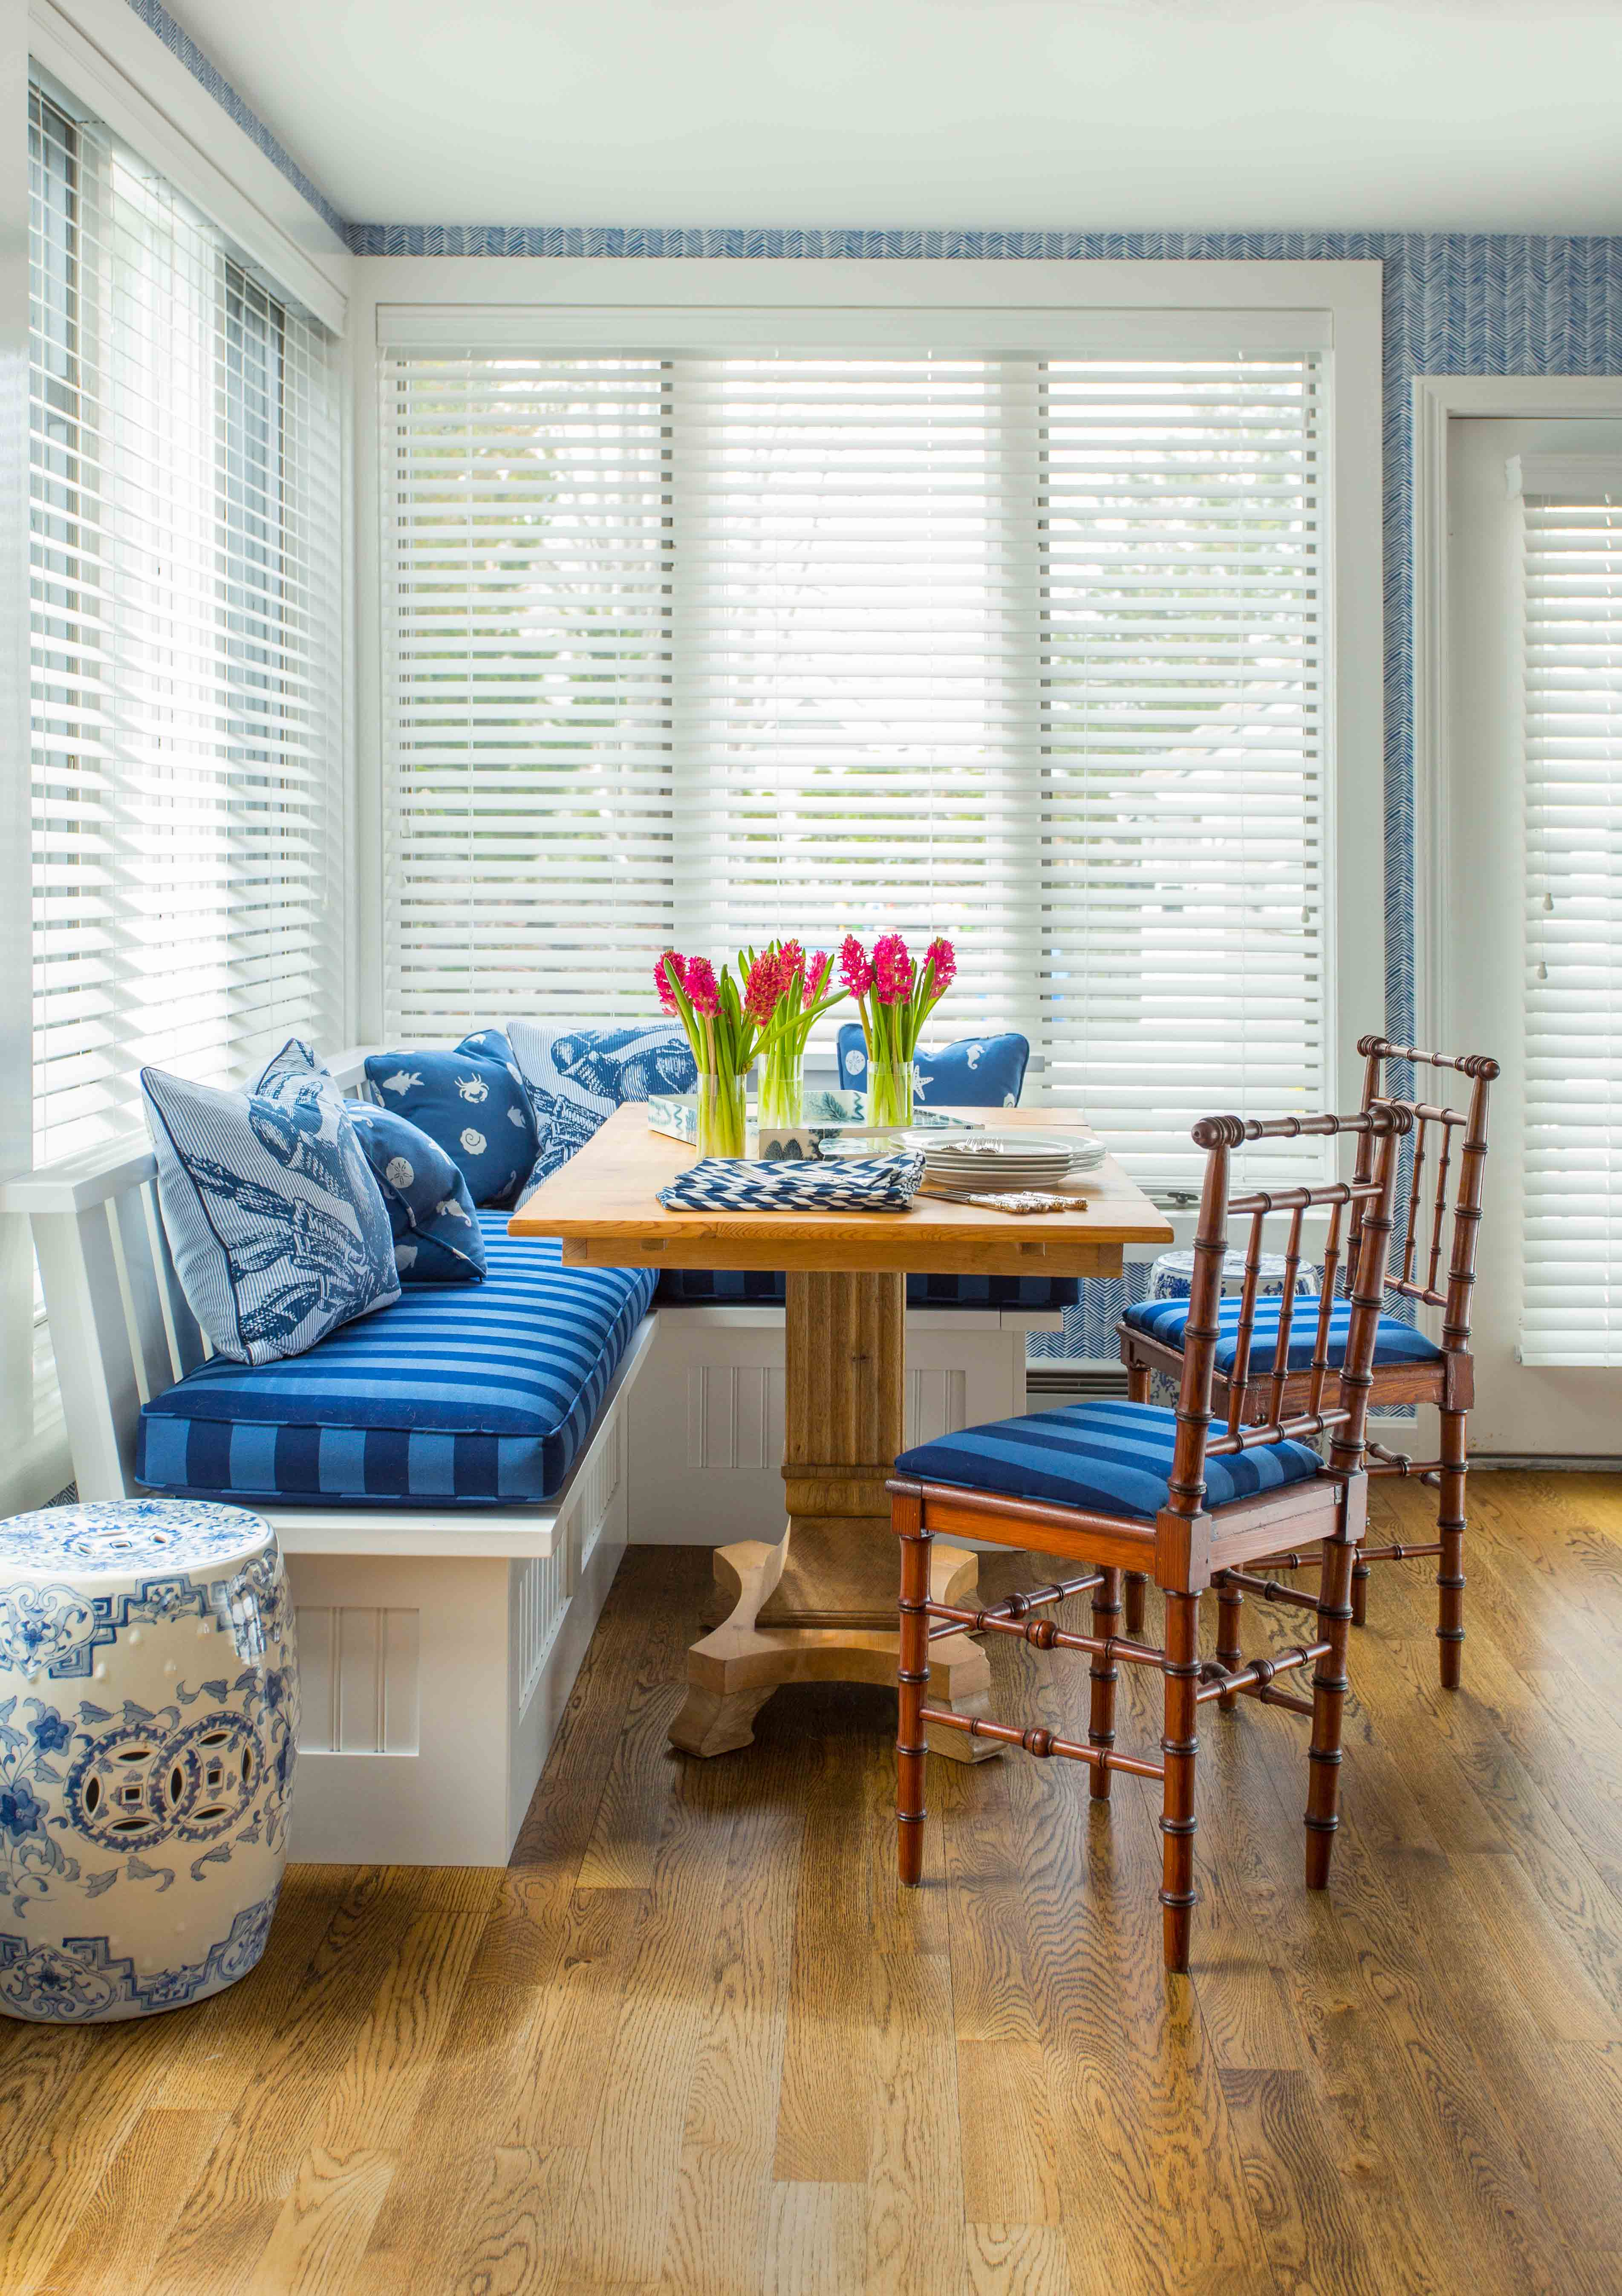 Embrace Summer with Decorating Tips from a Design Pro